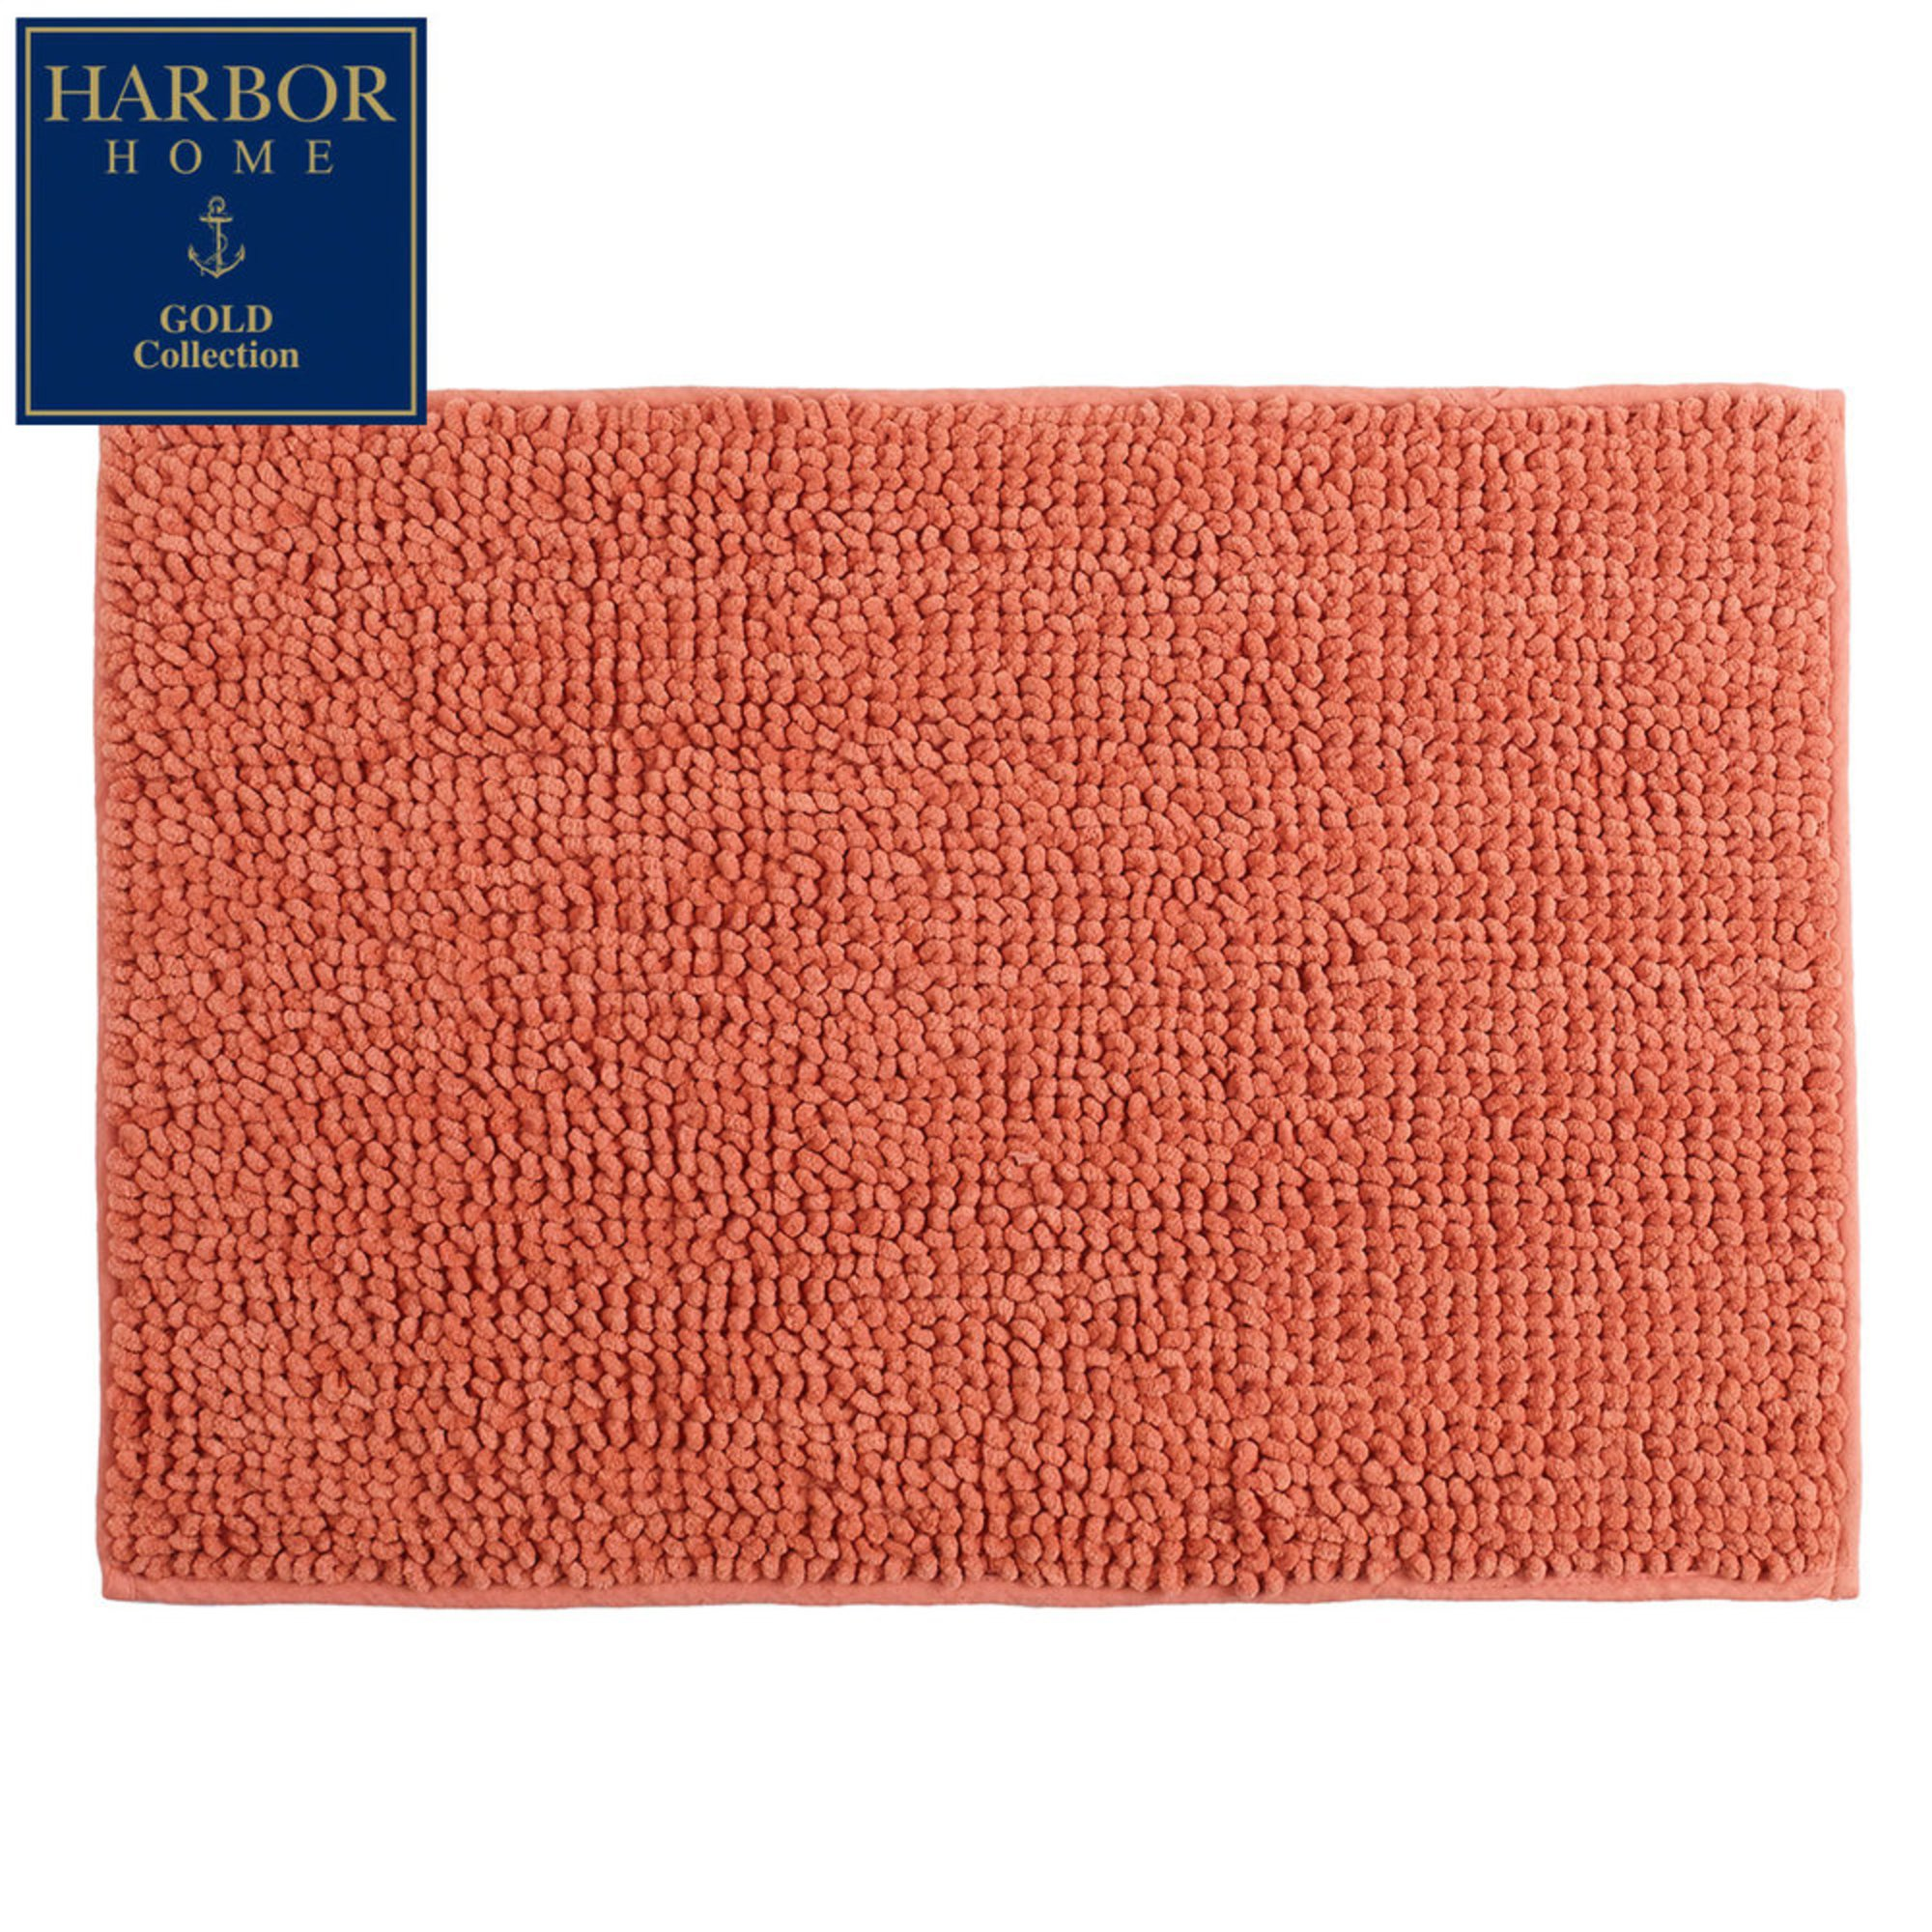 harbor home gold collection 17x24 bath rug coral bath rugs mats for the home shop your. Black Bedroom Furniture Sets. Home Design Ideas